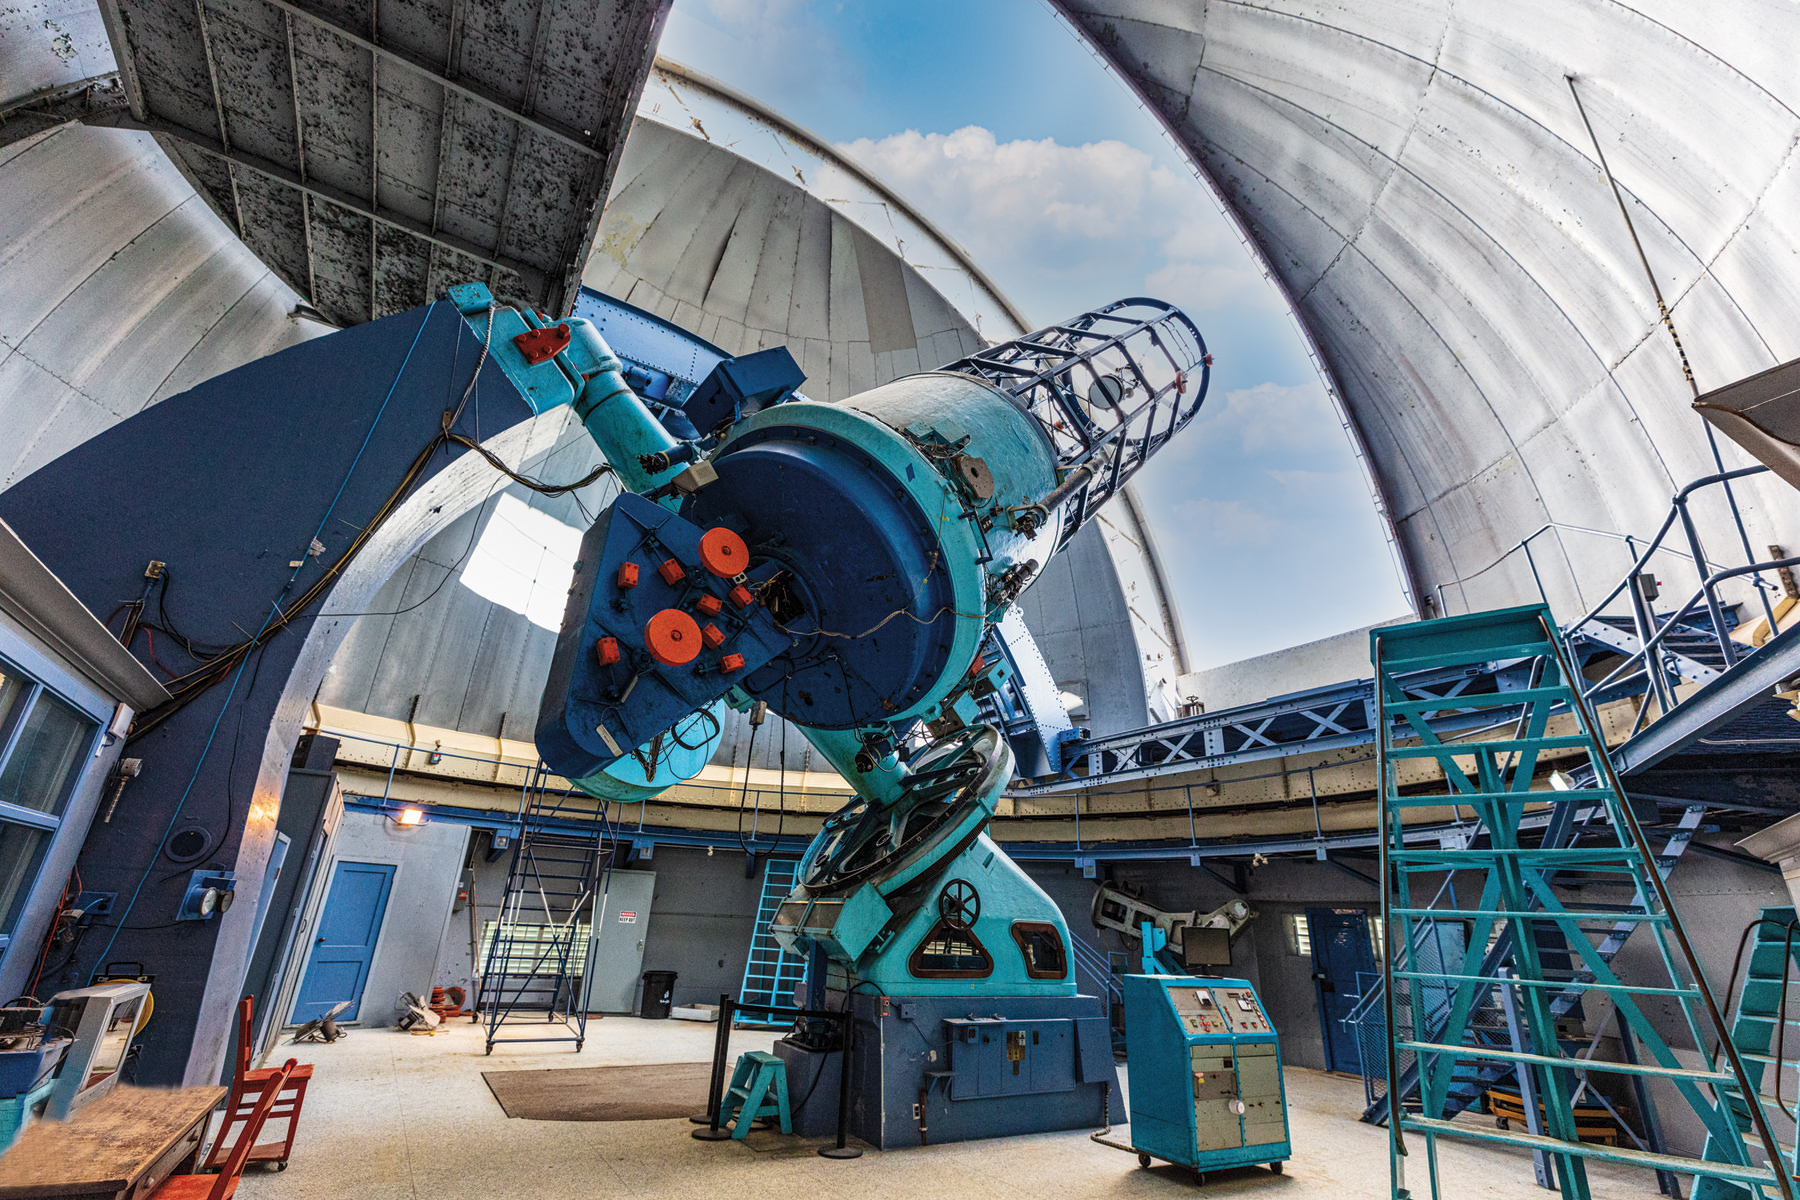 View of telescope from inside observatory with open dome